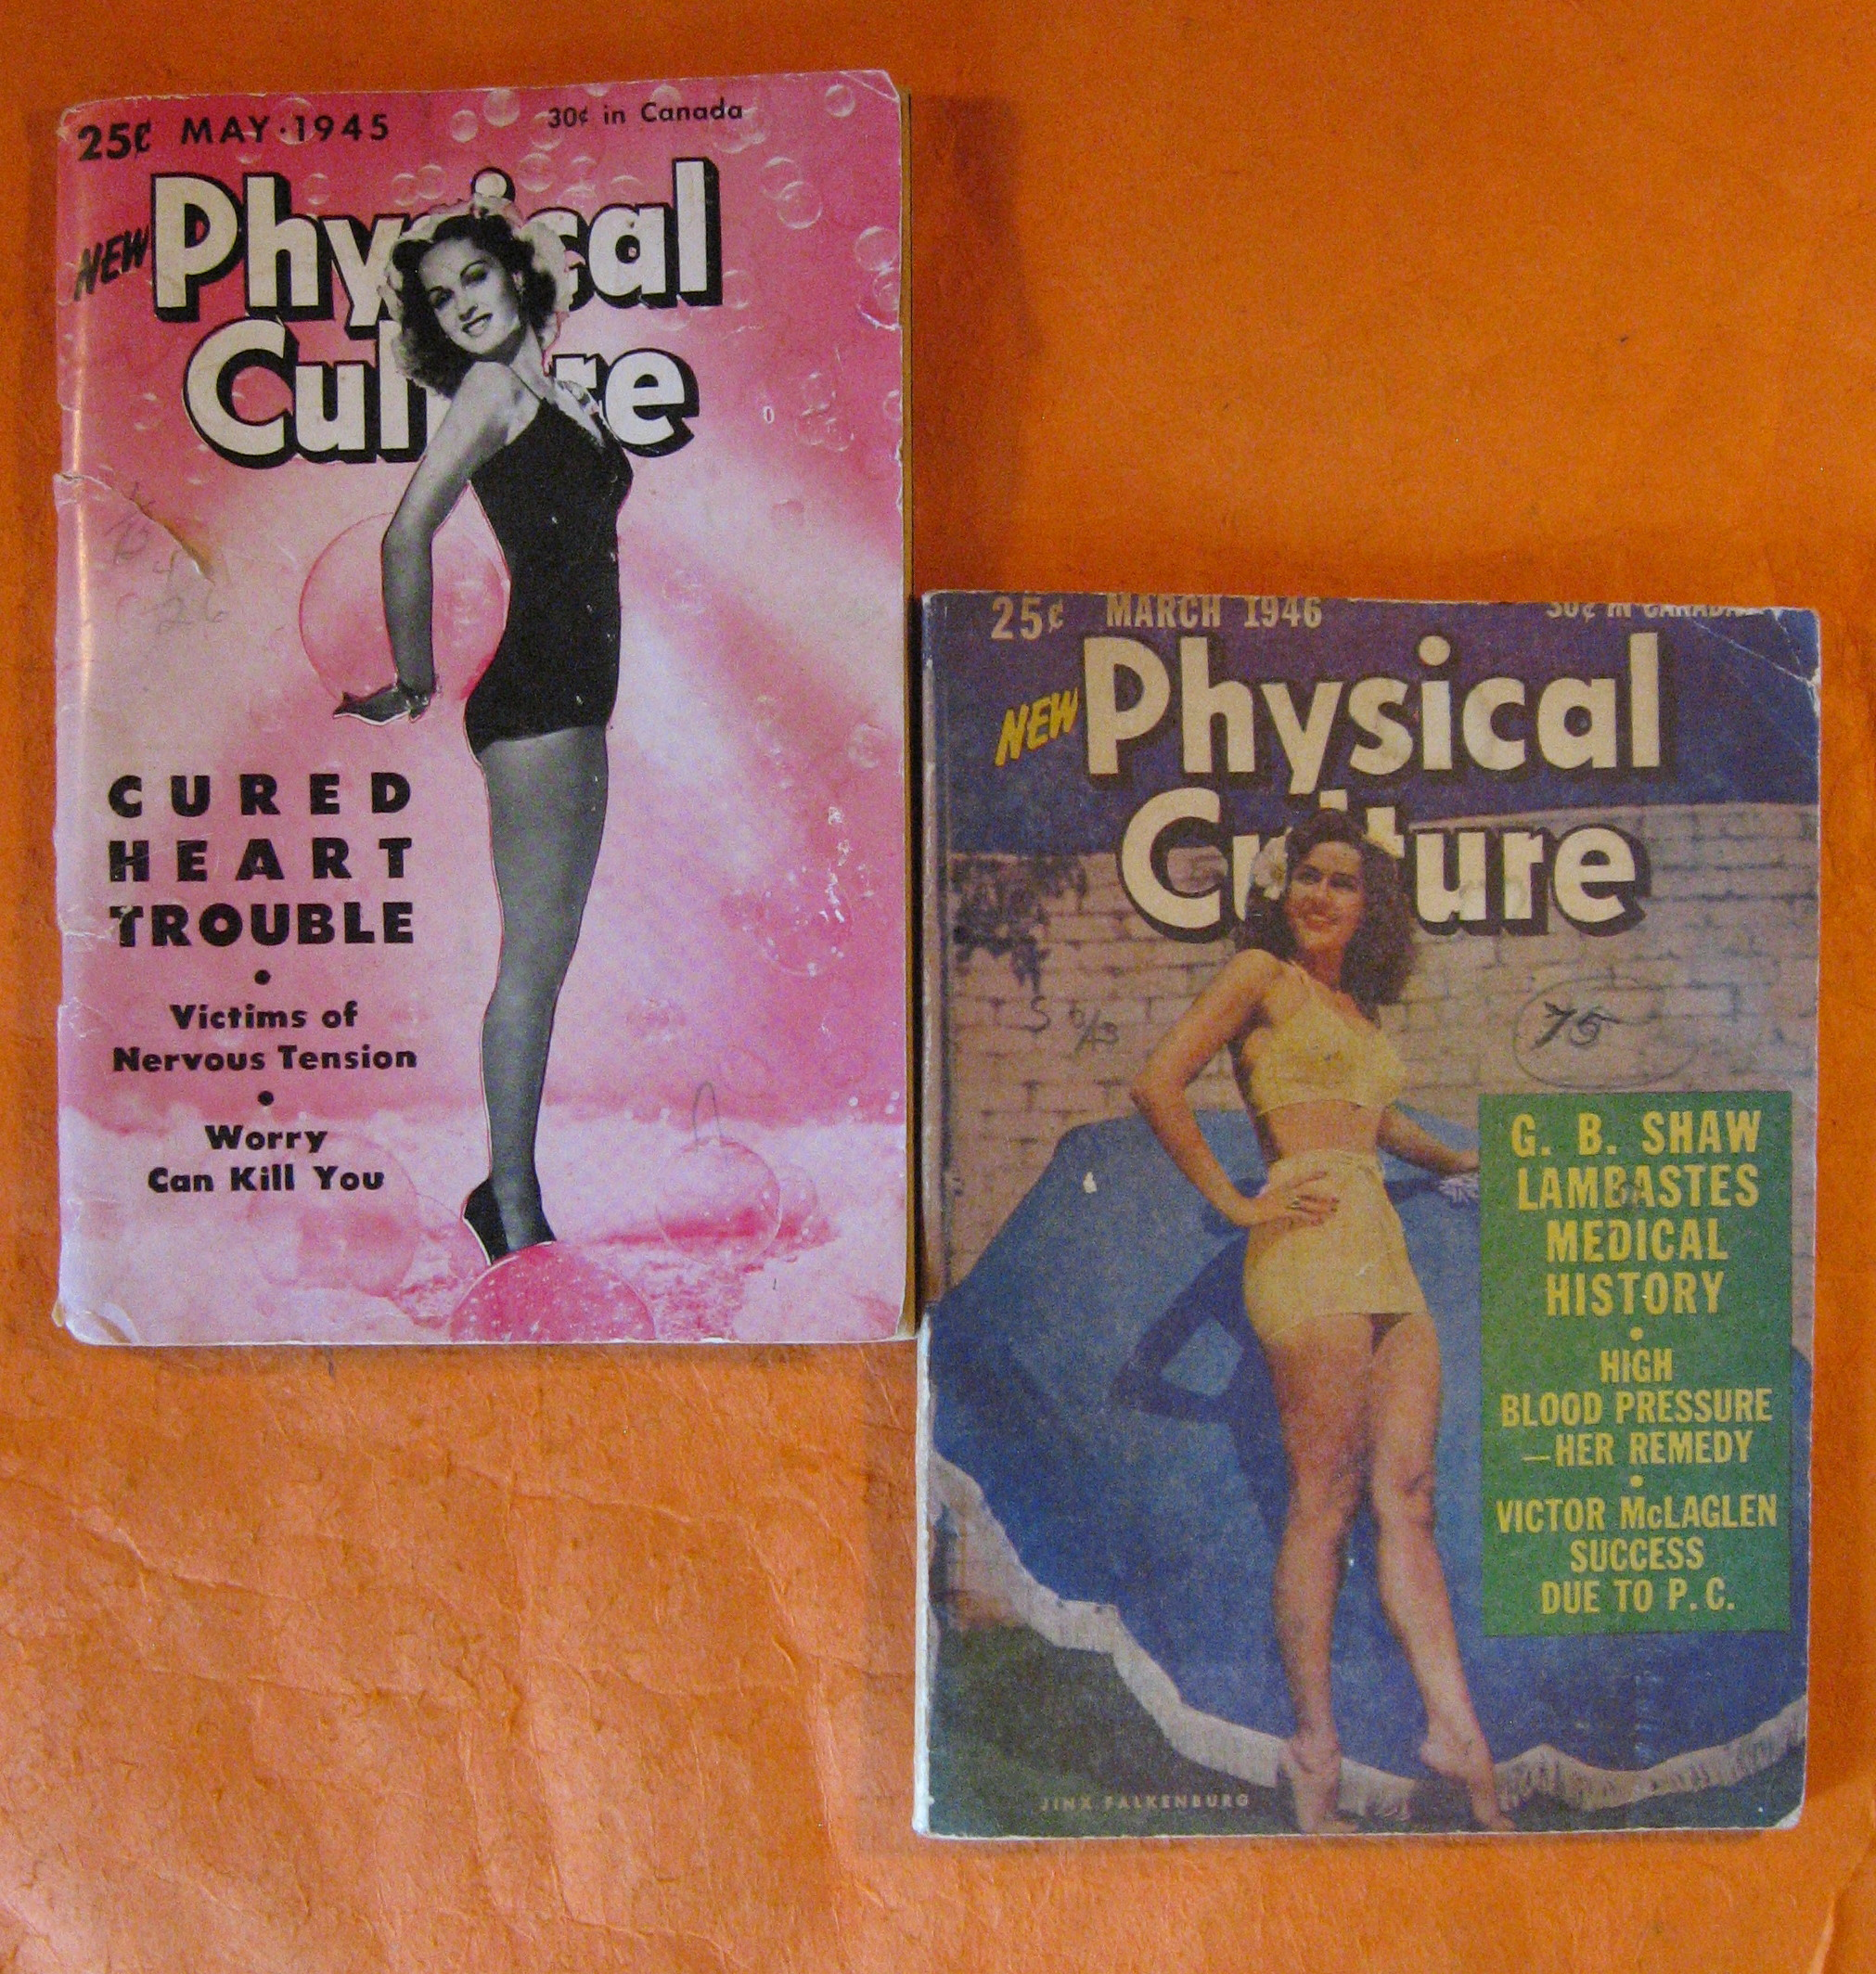 Two Copies of New Physical Culture Magazine, May 1945 and March 1946